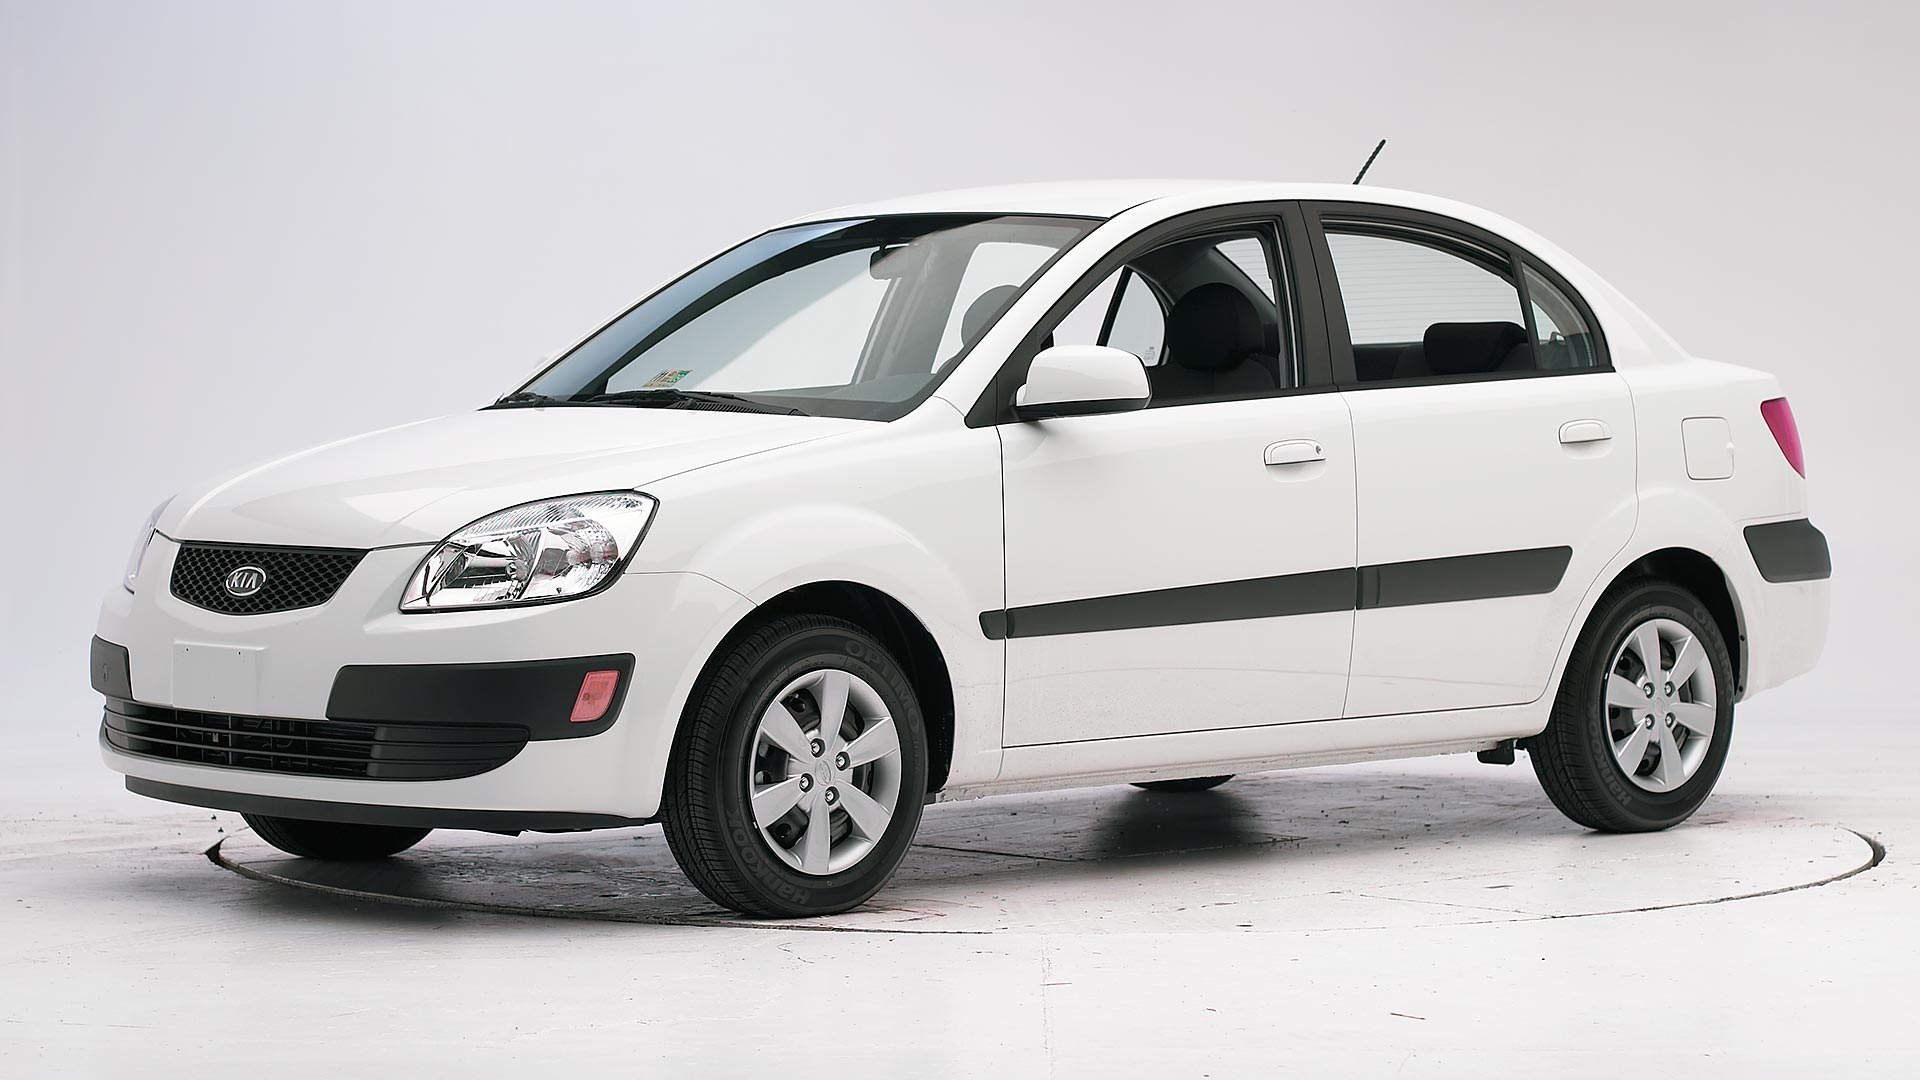 2010 Kia Rio 4-door sedan